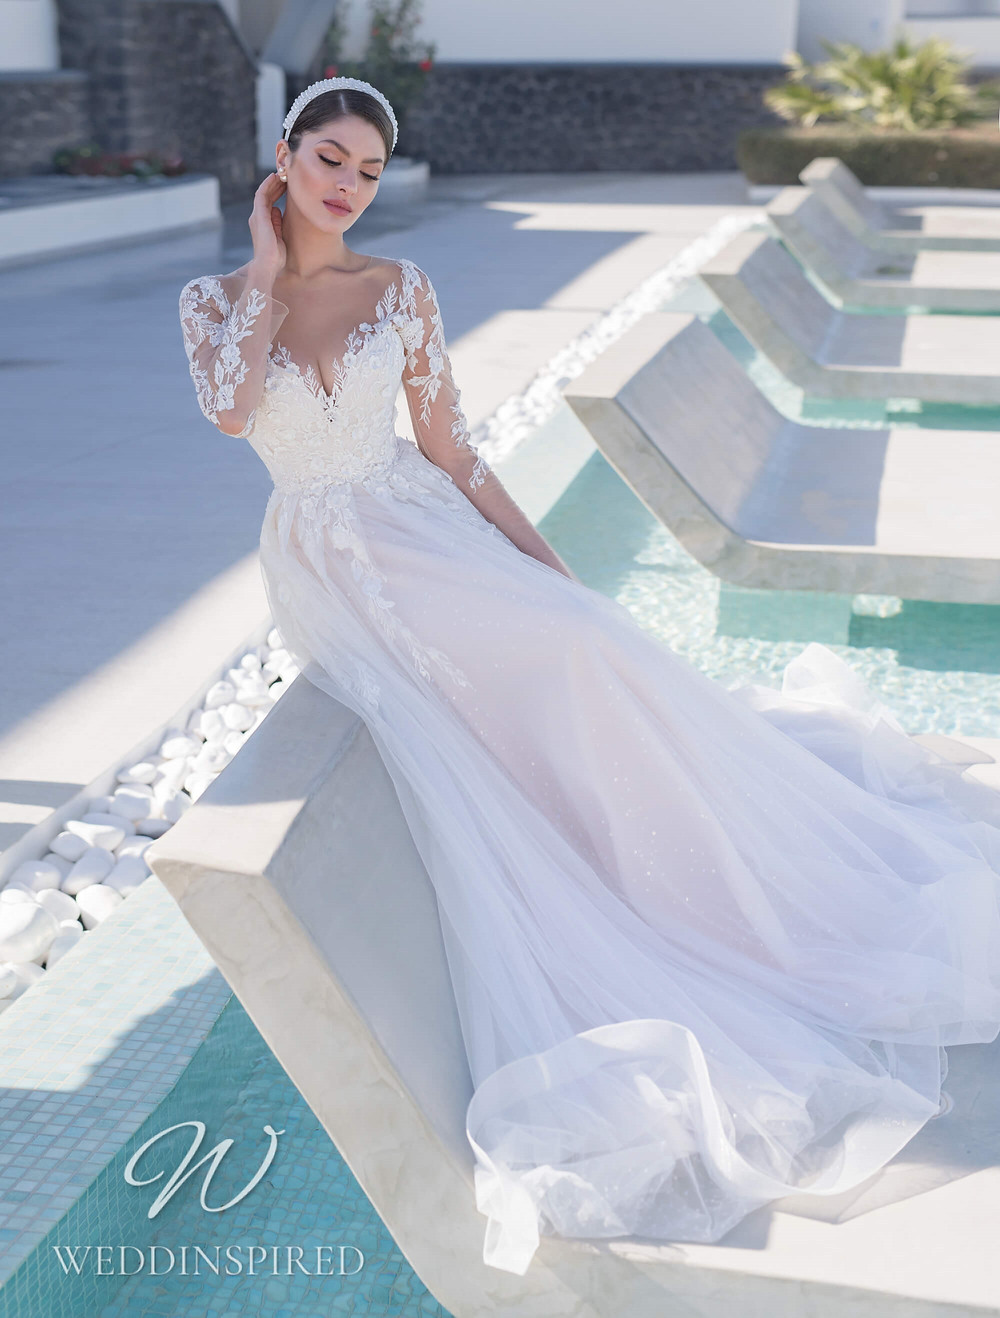 A Blunny 2021 lace and tulle A-line wedding dress with long sleeves